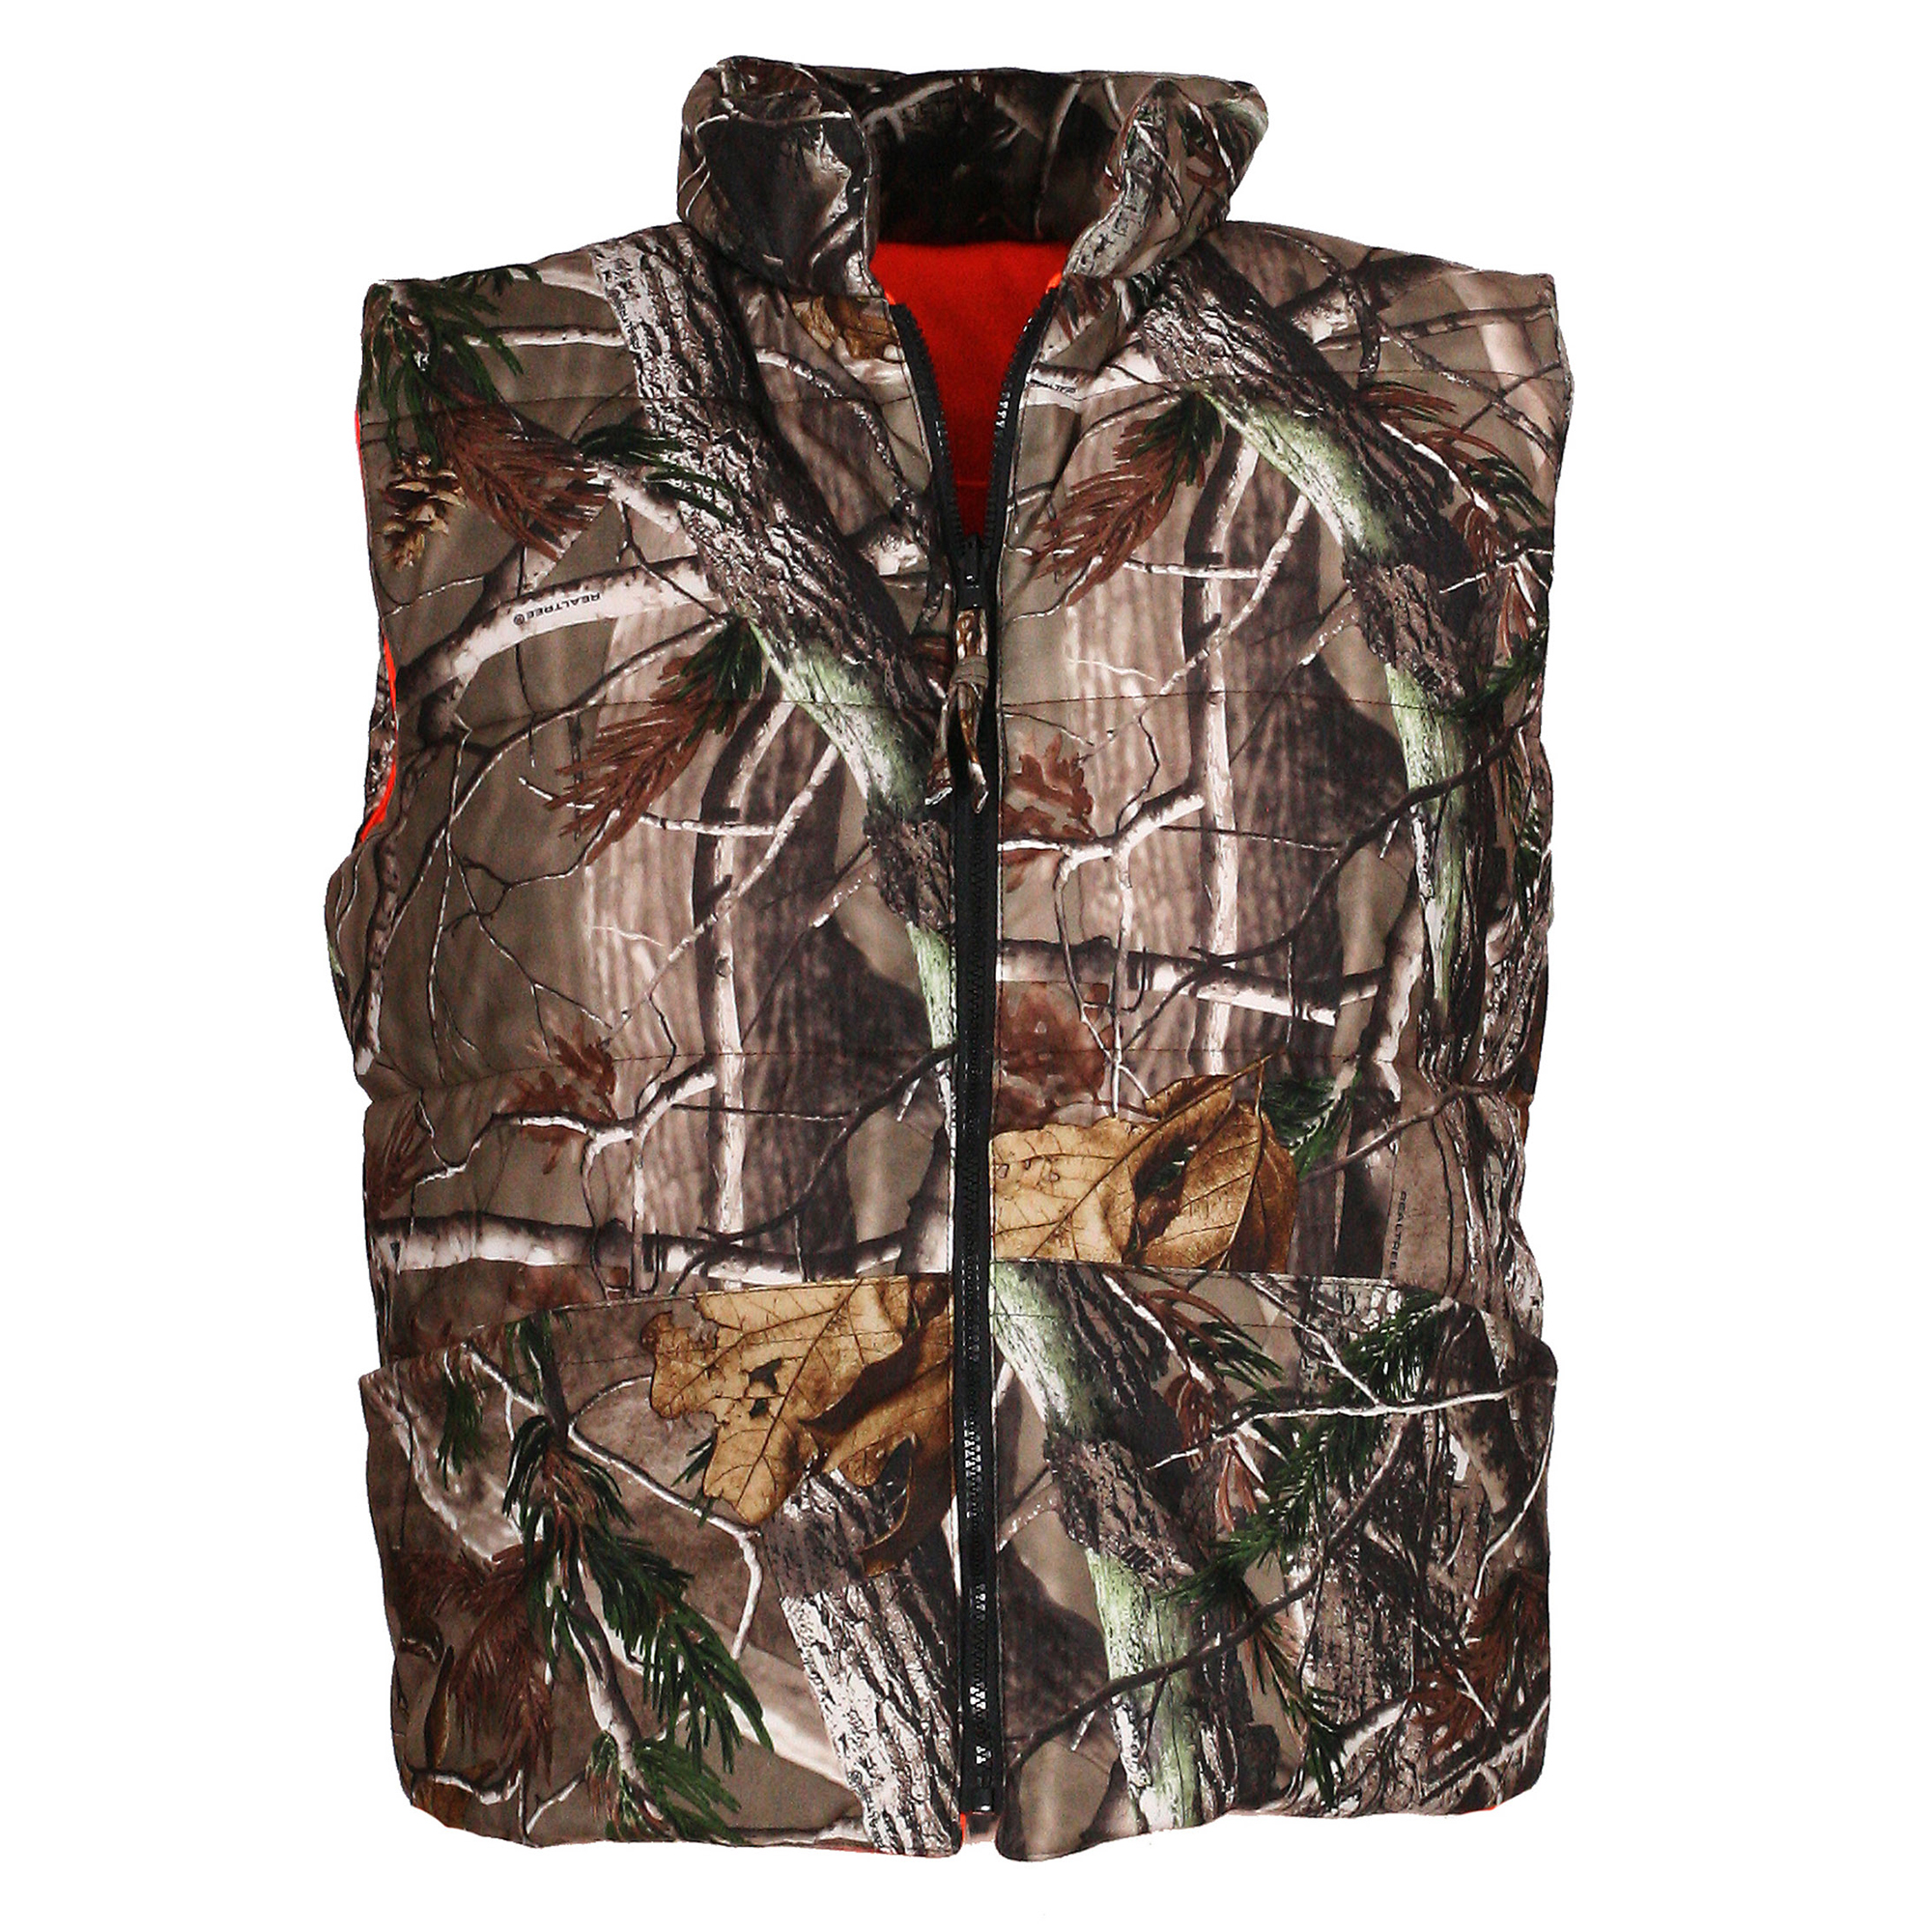 Gamehide Men's Deer Camp Reversible Waterproof Insulated Vest